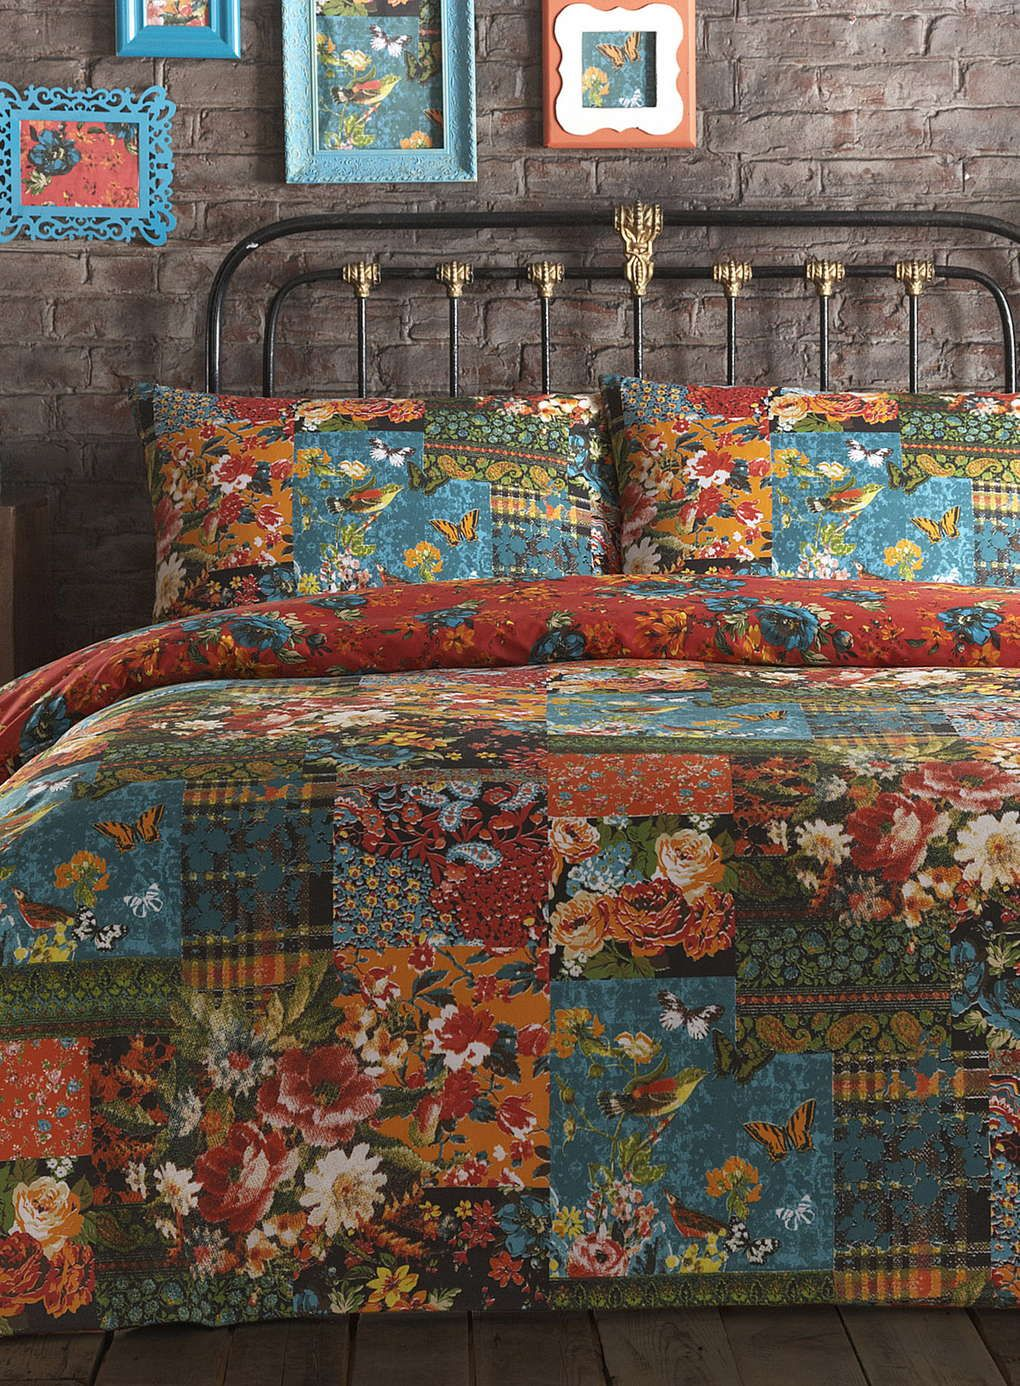 Vintage Tapestry Patch Bedding Set - BHS | QUARTOS | Pinterest ... : bhs quilted bedspreads - Adamdwight.com